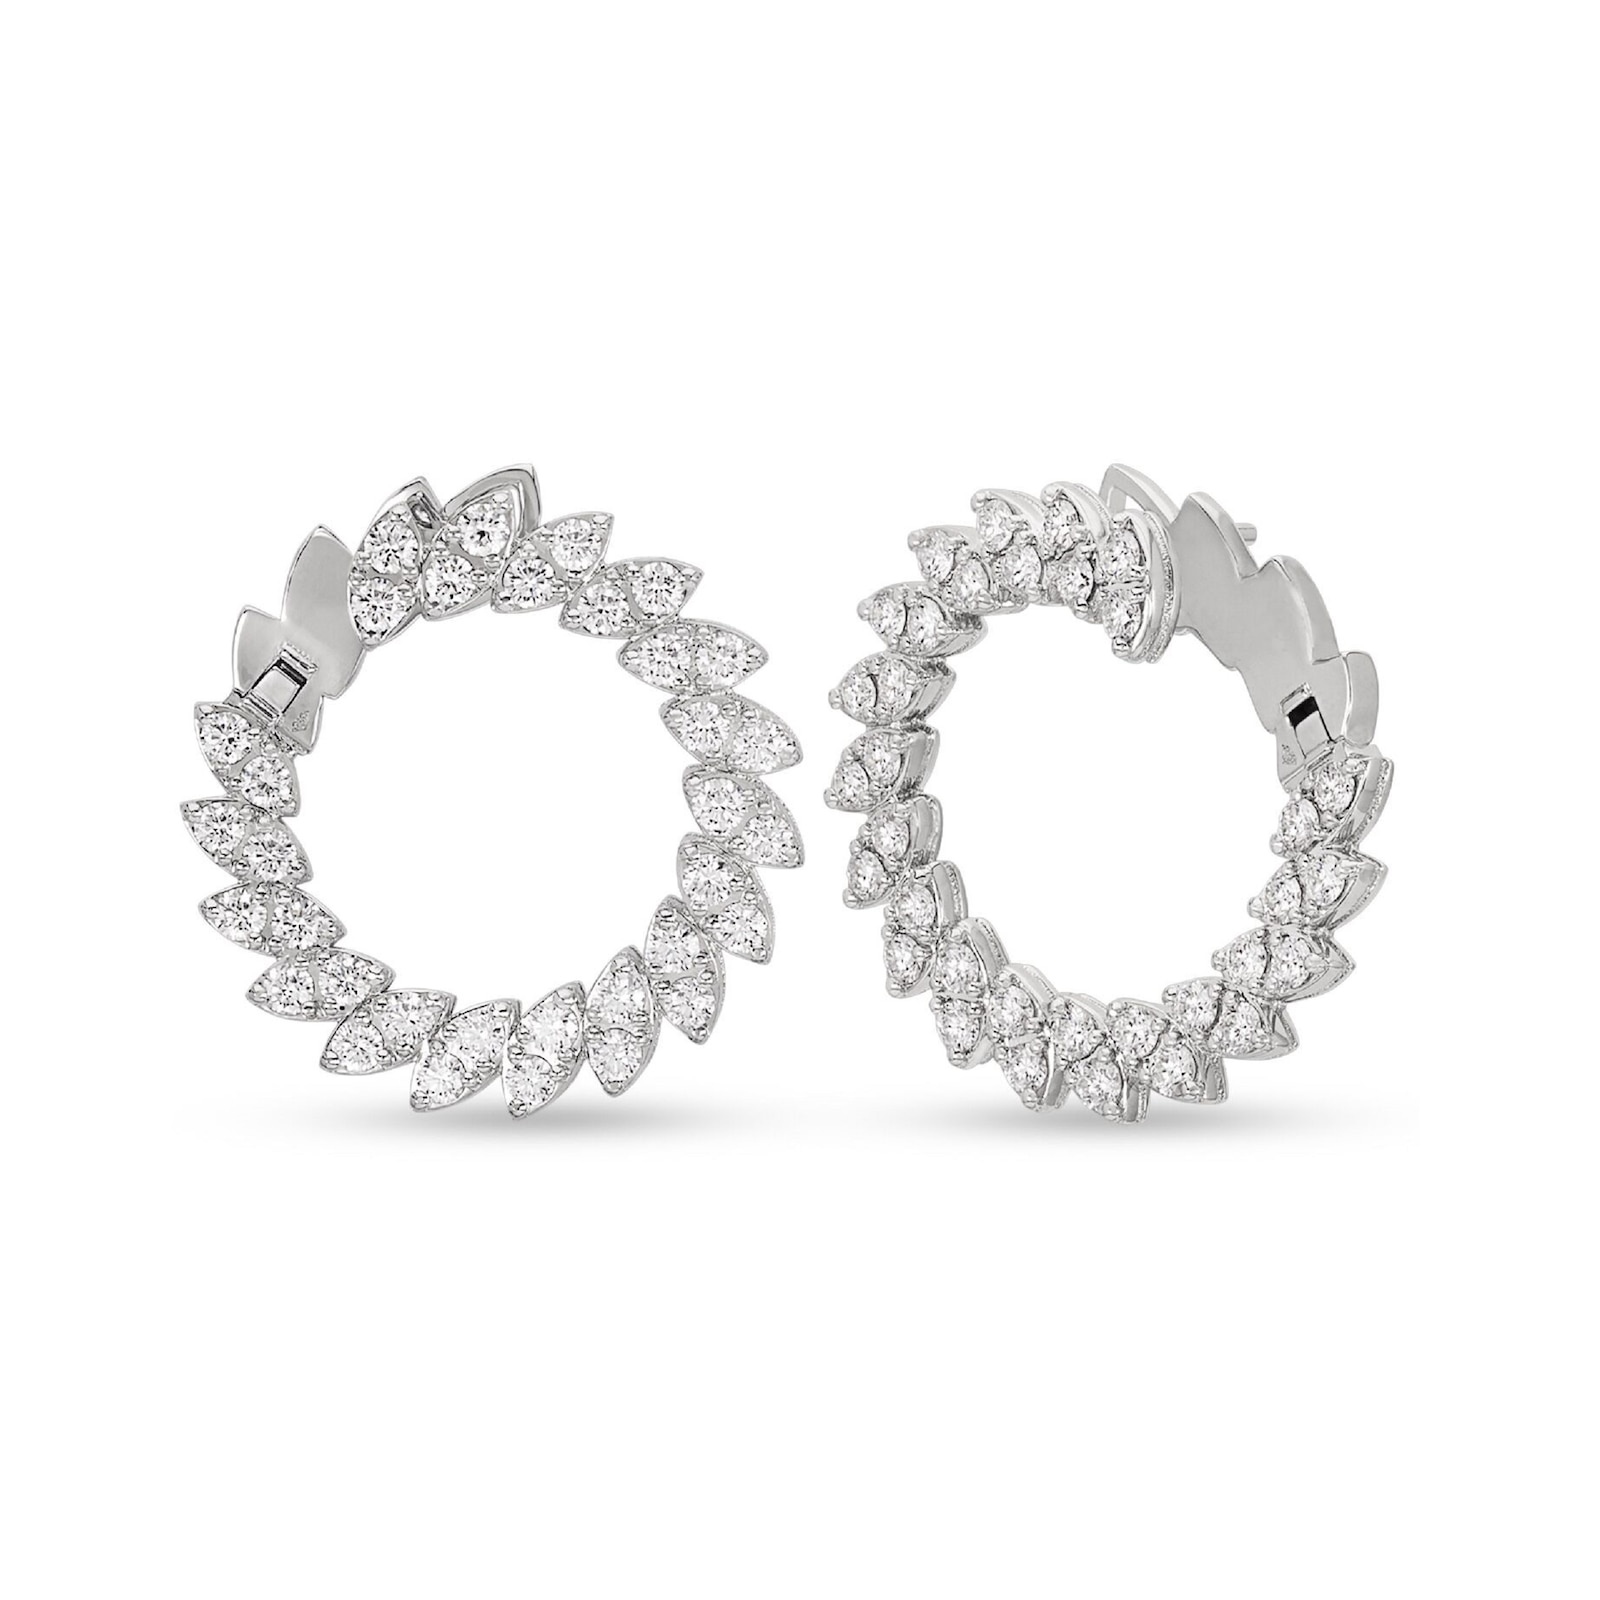 Roberto Coin The Marquesa Collection 18k White Gold 2.09cttw Diamond Earrings